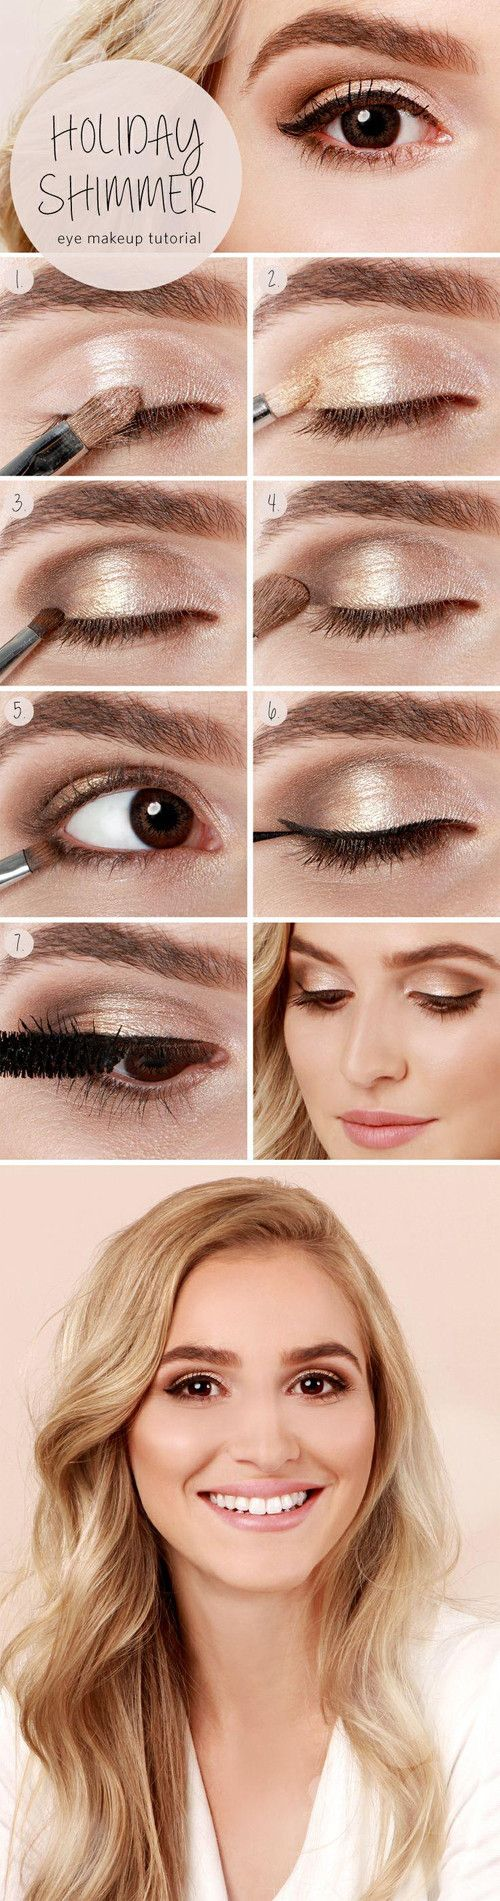 Eye Makeup Tutorial - Holiday. Use the Splurge Cream Shadow (elegant) and Mineral Eye Pigment (confident) to acheive this look. | To purchase: www.youniqueproducts.com/LovelyLashesbyMaryseLeBlanc